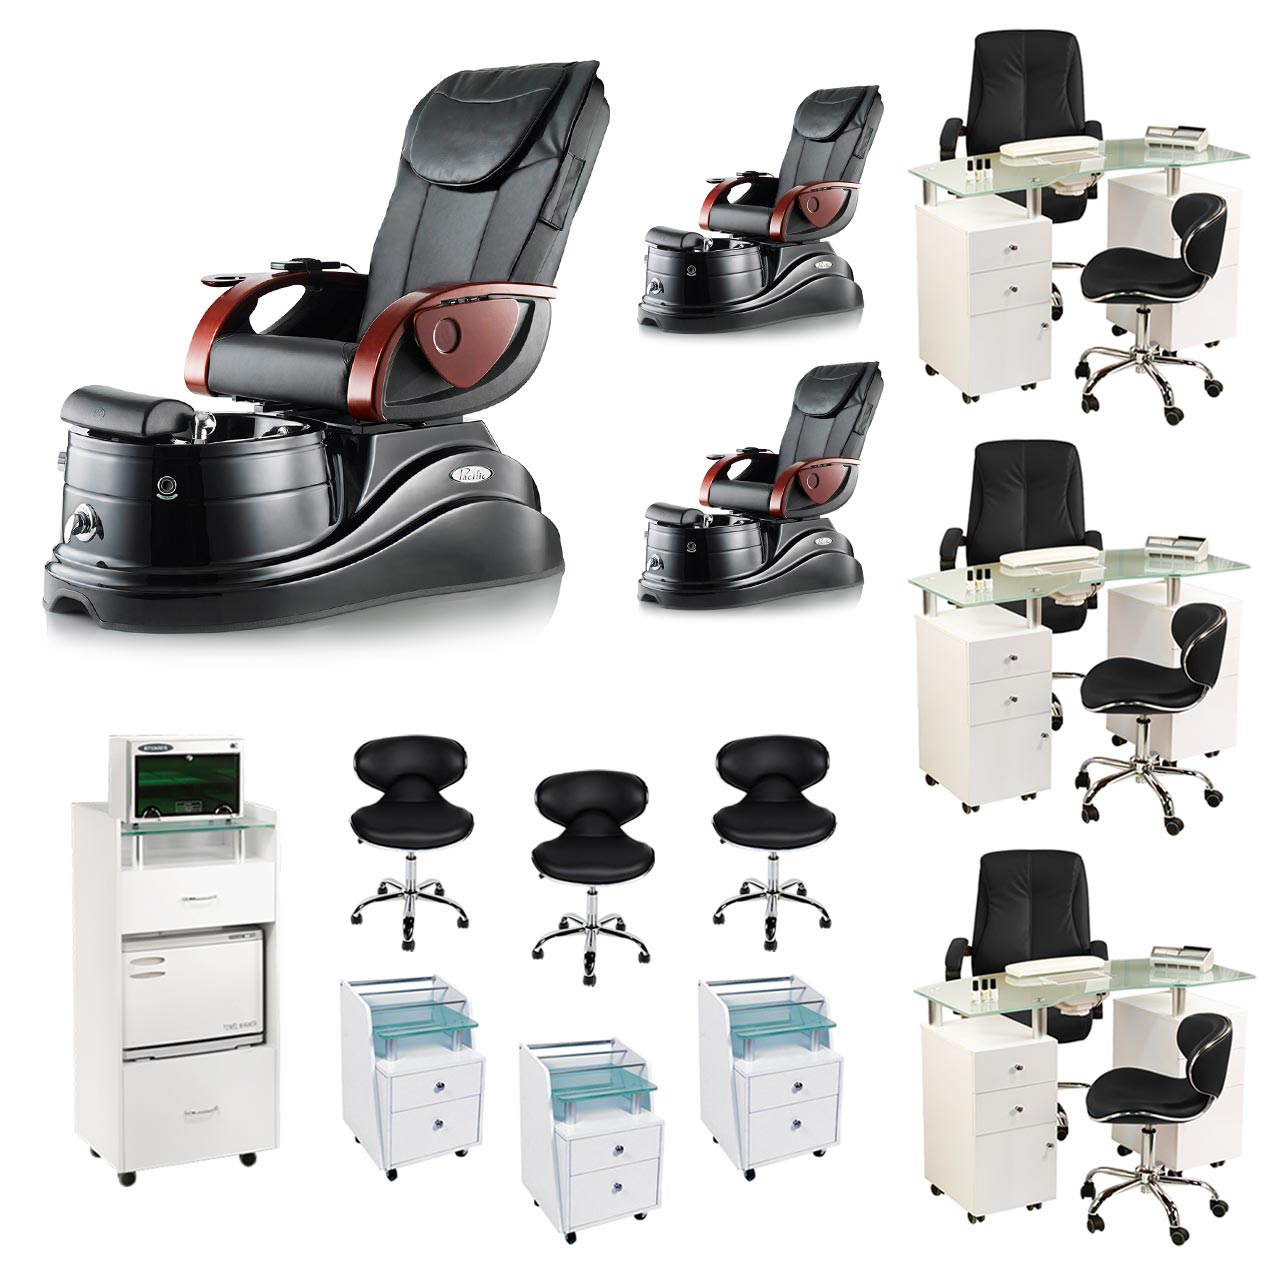 Black 3 Pacific AX Nail Salon Furniture Package Deal  With 3 Manicure Stations  main product image